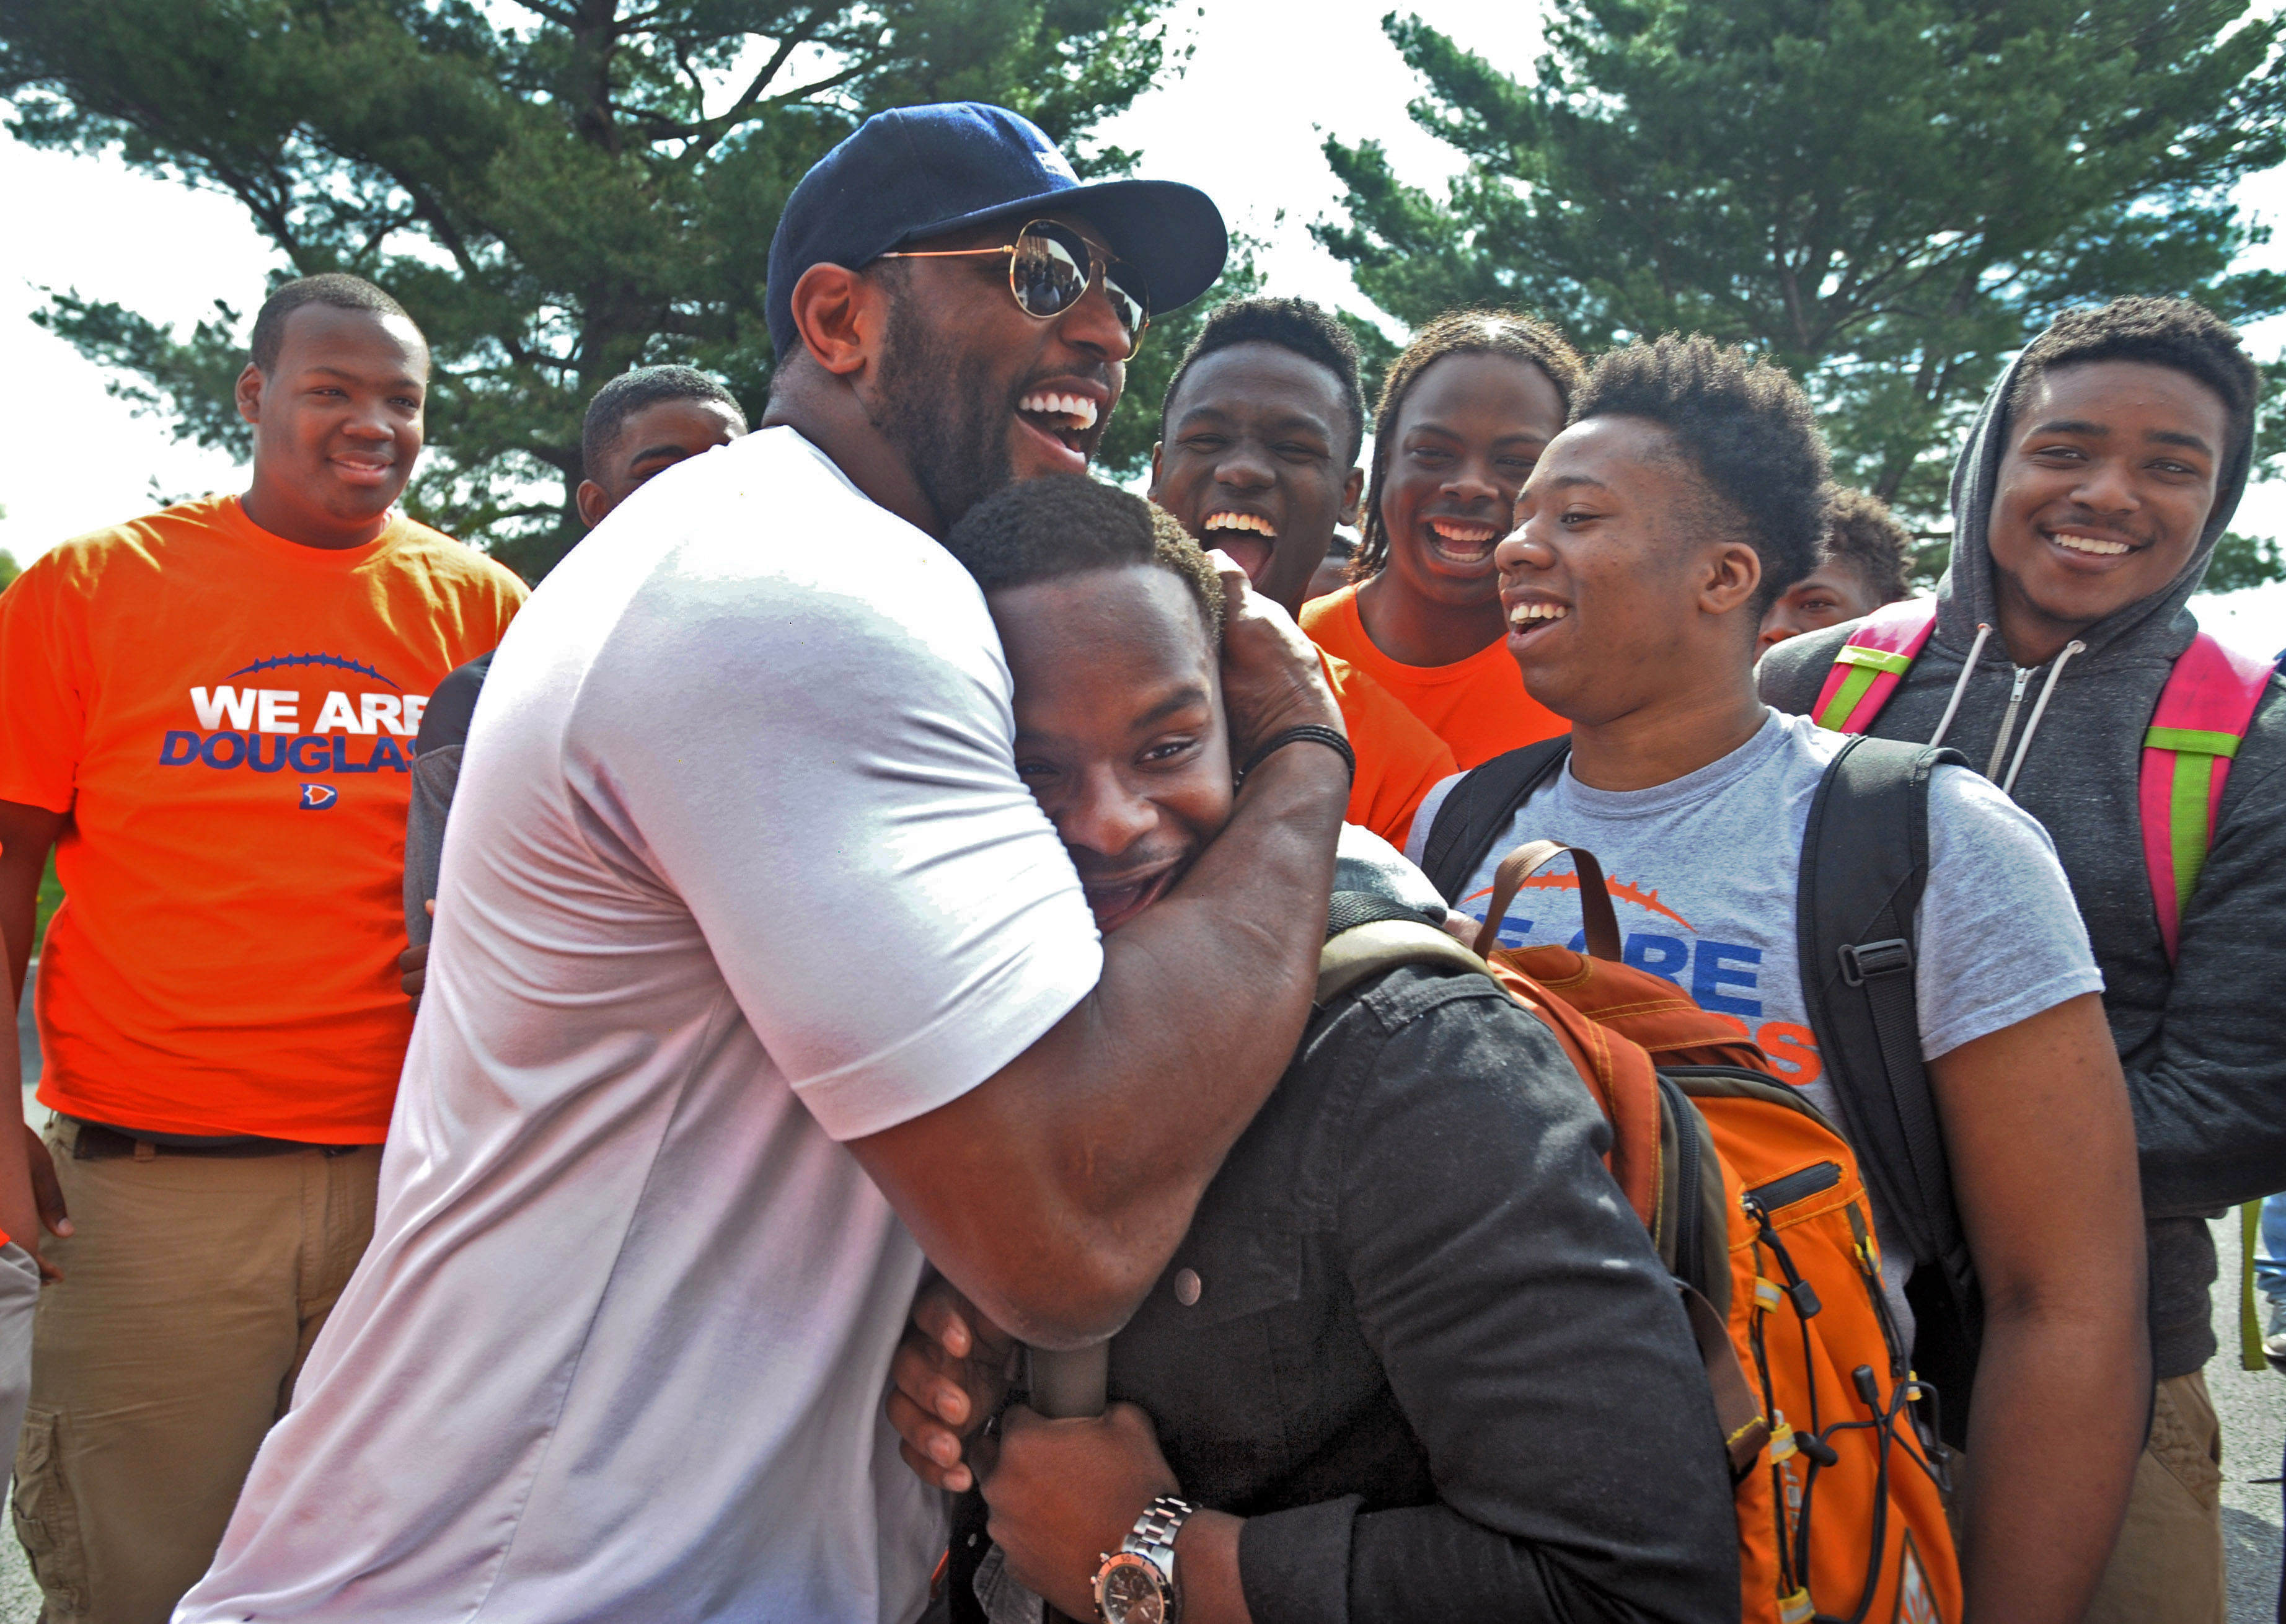 Former Baltimore Ravens NFL football player Ray Lewis hugs 17-year-old Azariah Bratton-Bey Jr., a senior running back on Frederick Douglass High's football team, during a visit to the school Thursday, April 30, 2015, in Baltimore. Lewis, Ravens coach John